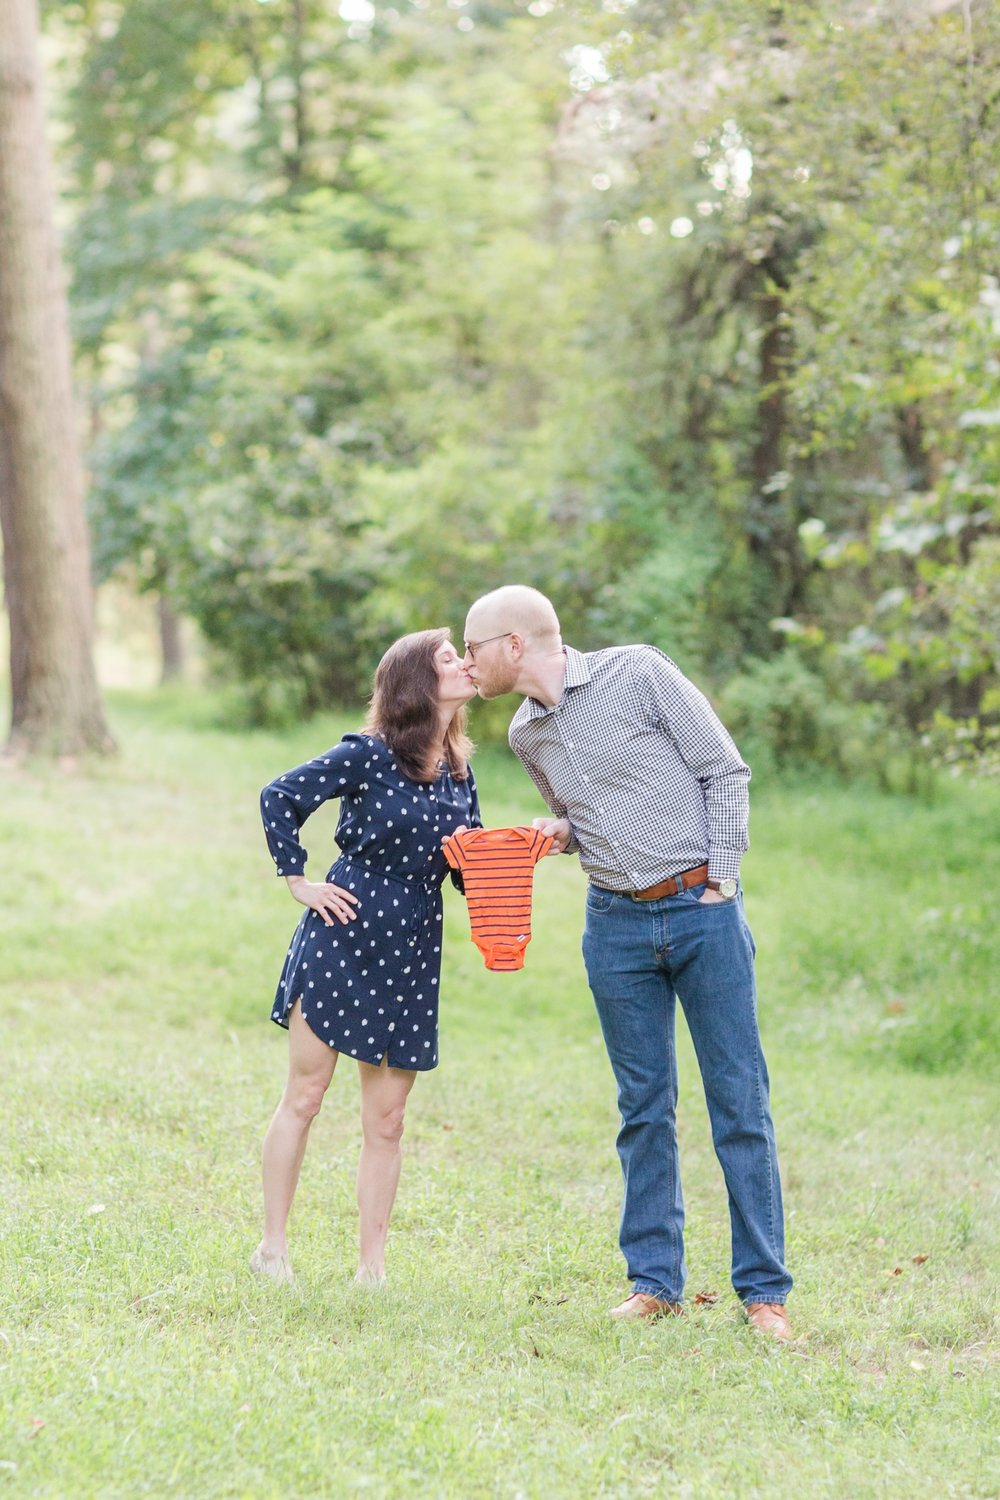 Bird Family 2018-74_Loch-Raven-Reservoir-Anniversary-Pregnancy-Reveal-Photographer-anna-grace-photography-photo.jpg